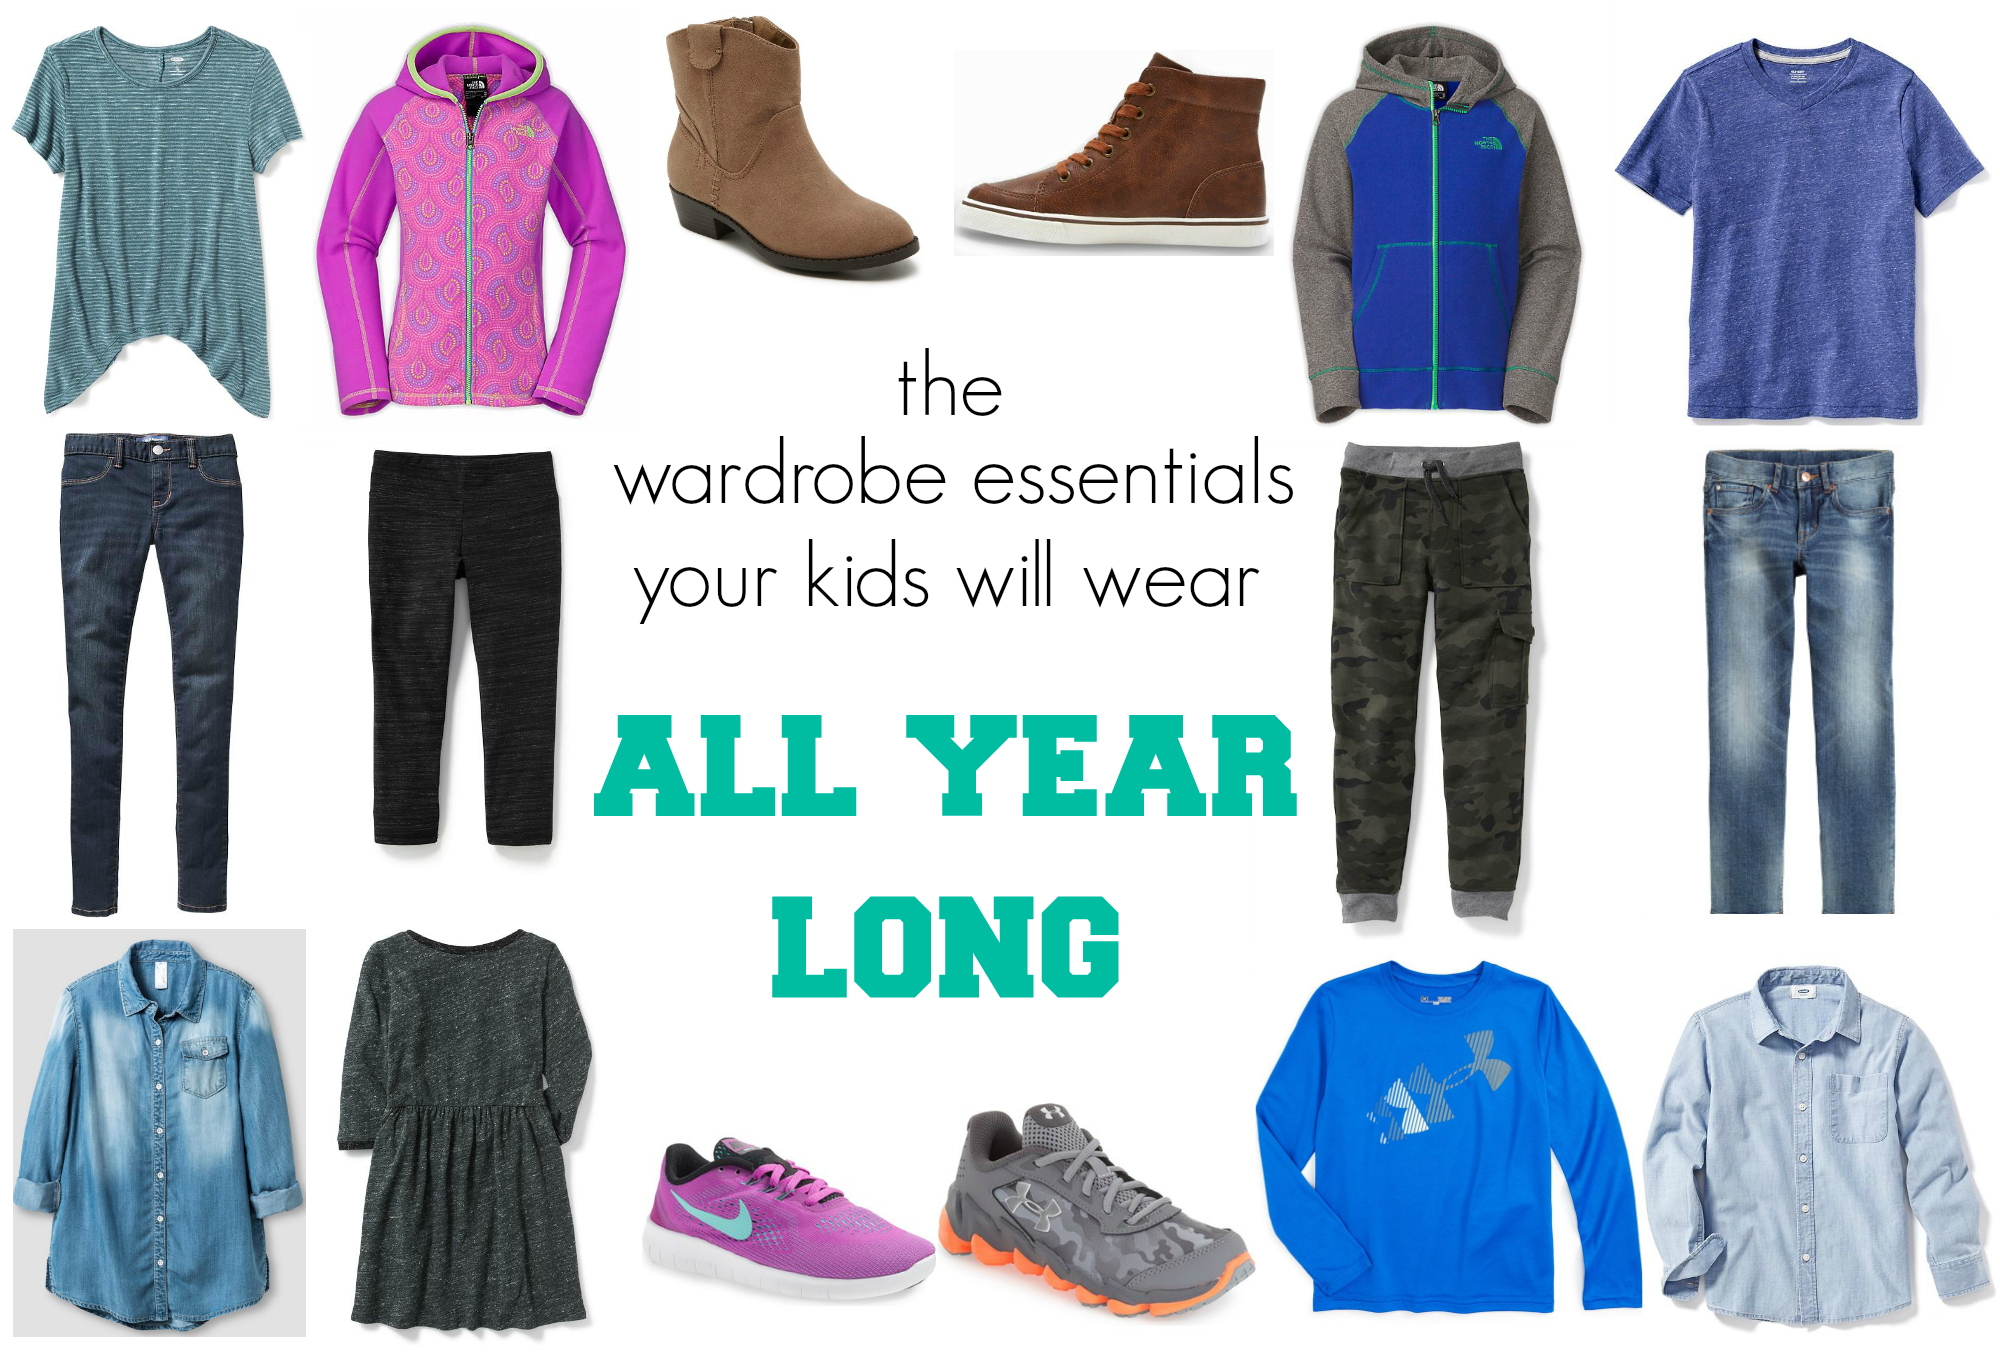 the wardrobe essentials your kids will wear all year long